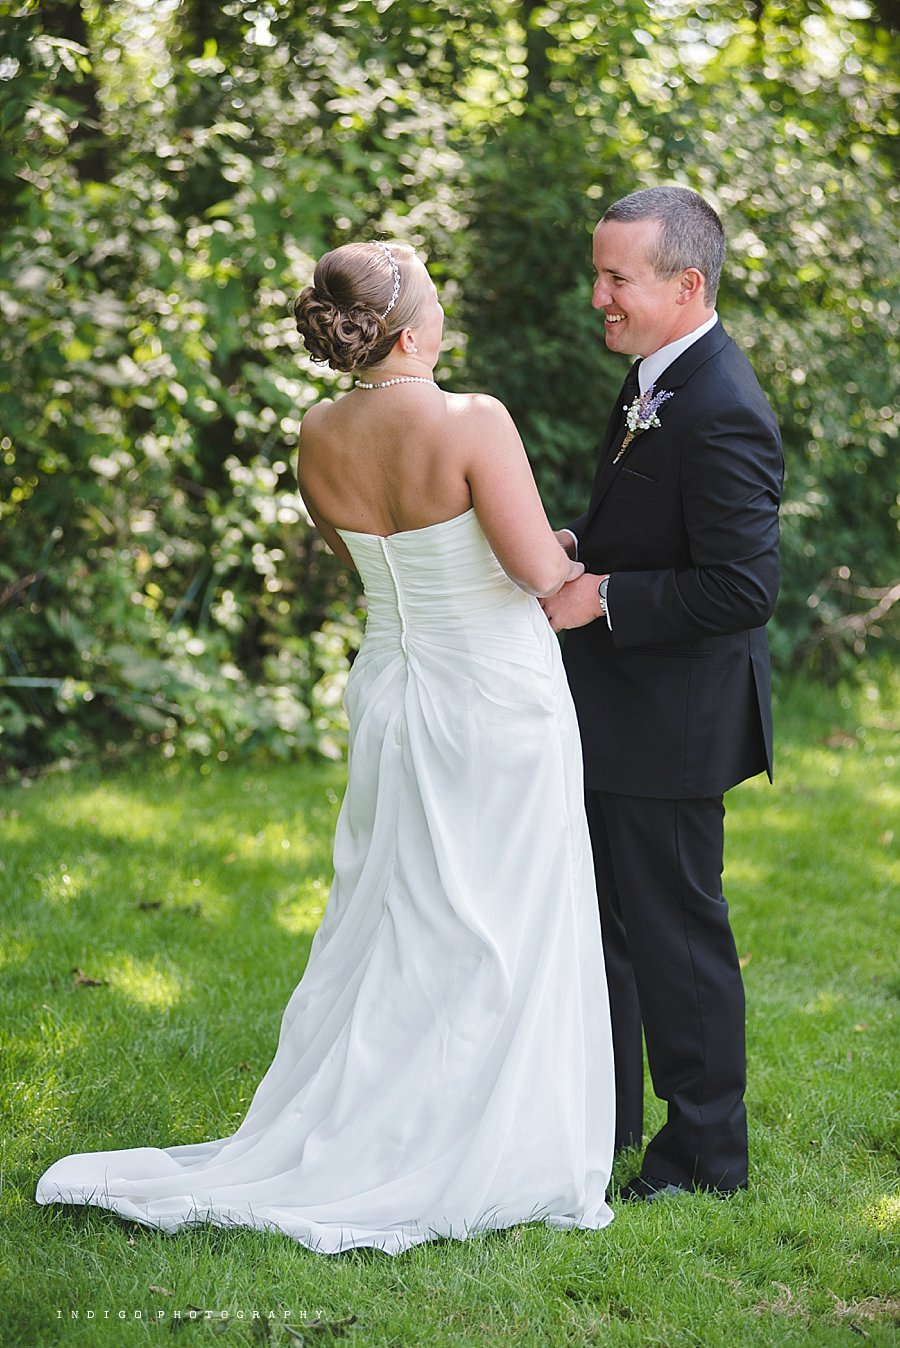 timber-pointe-golf-course-wedding-rockford-il-wedding-photographers_1683.jpg